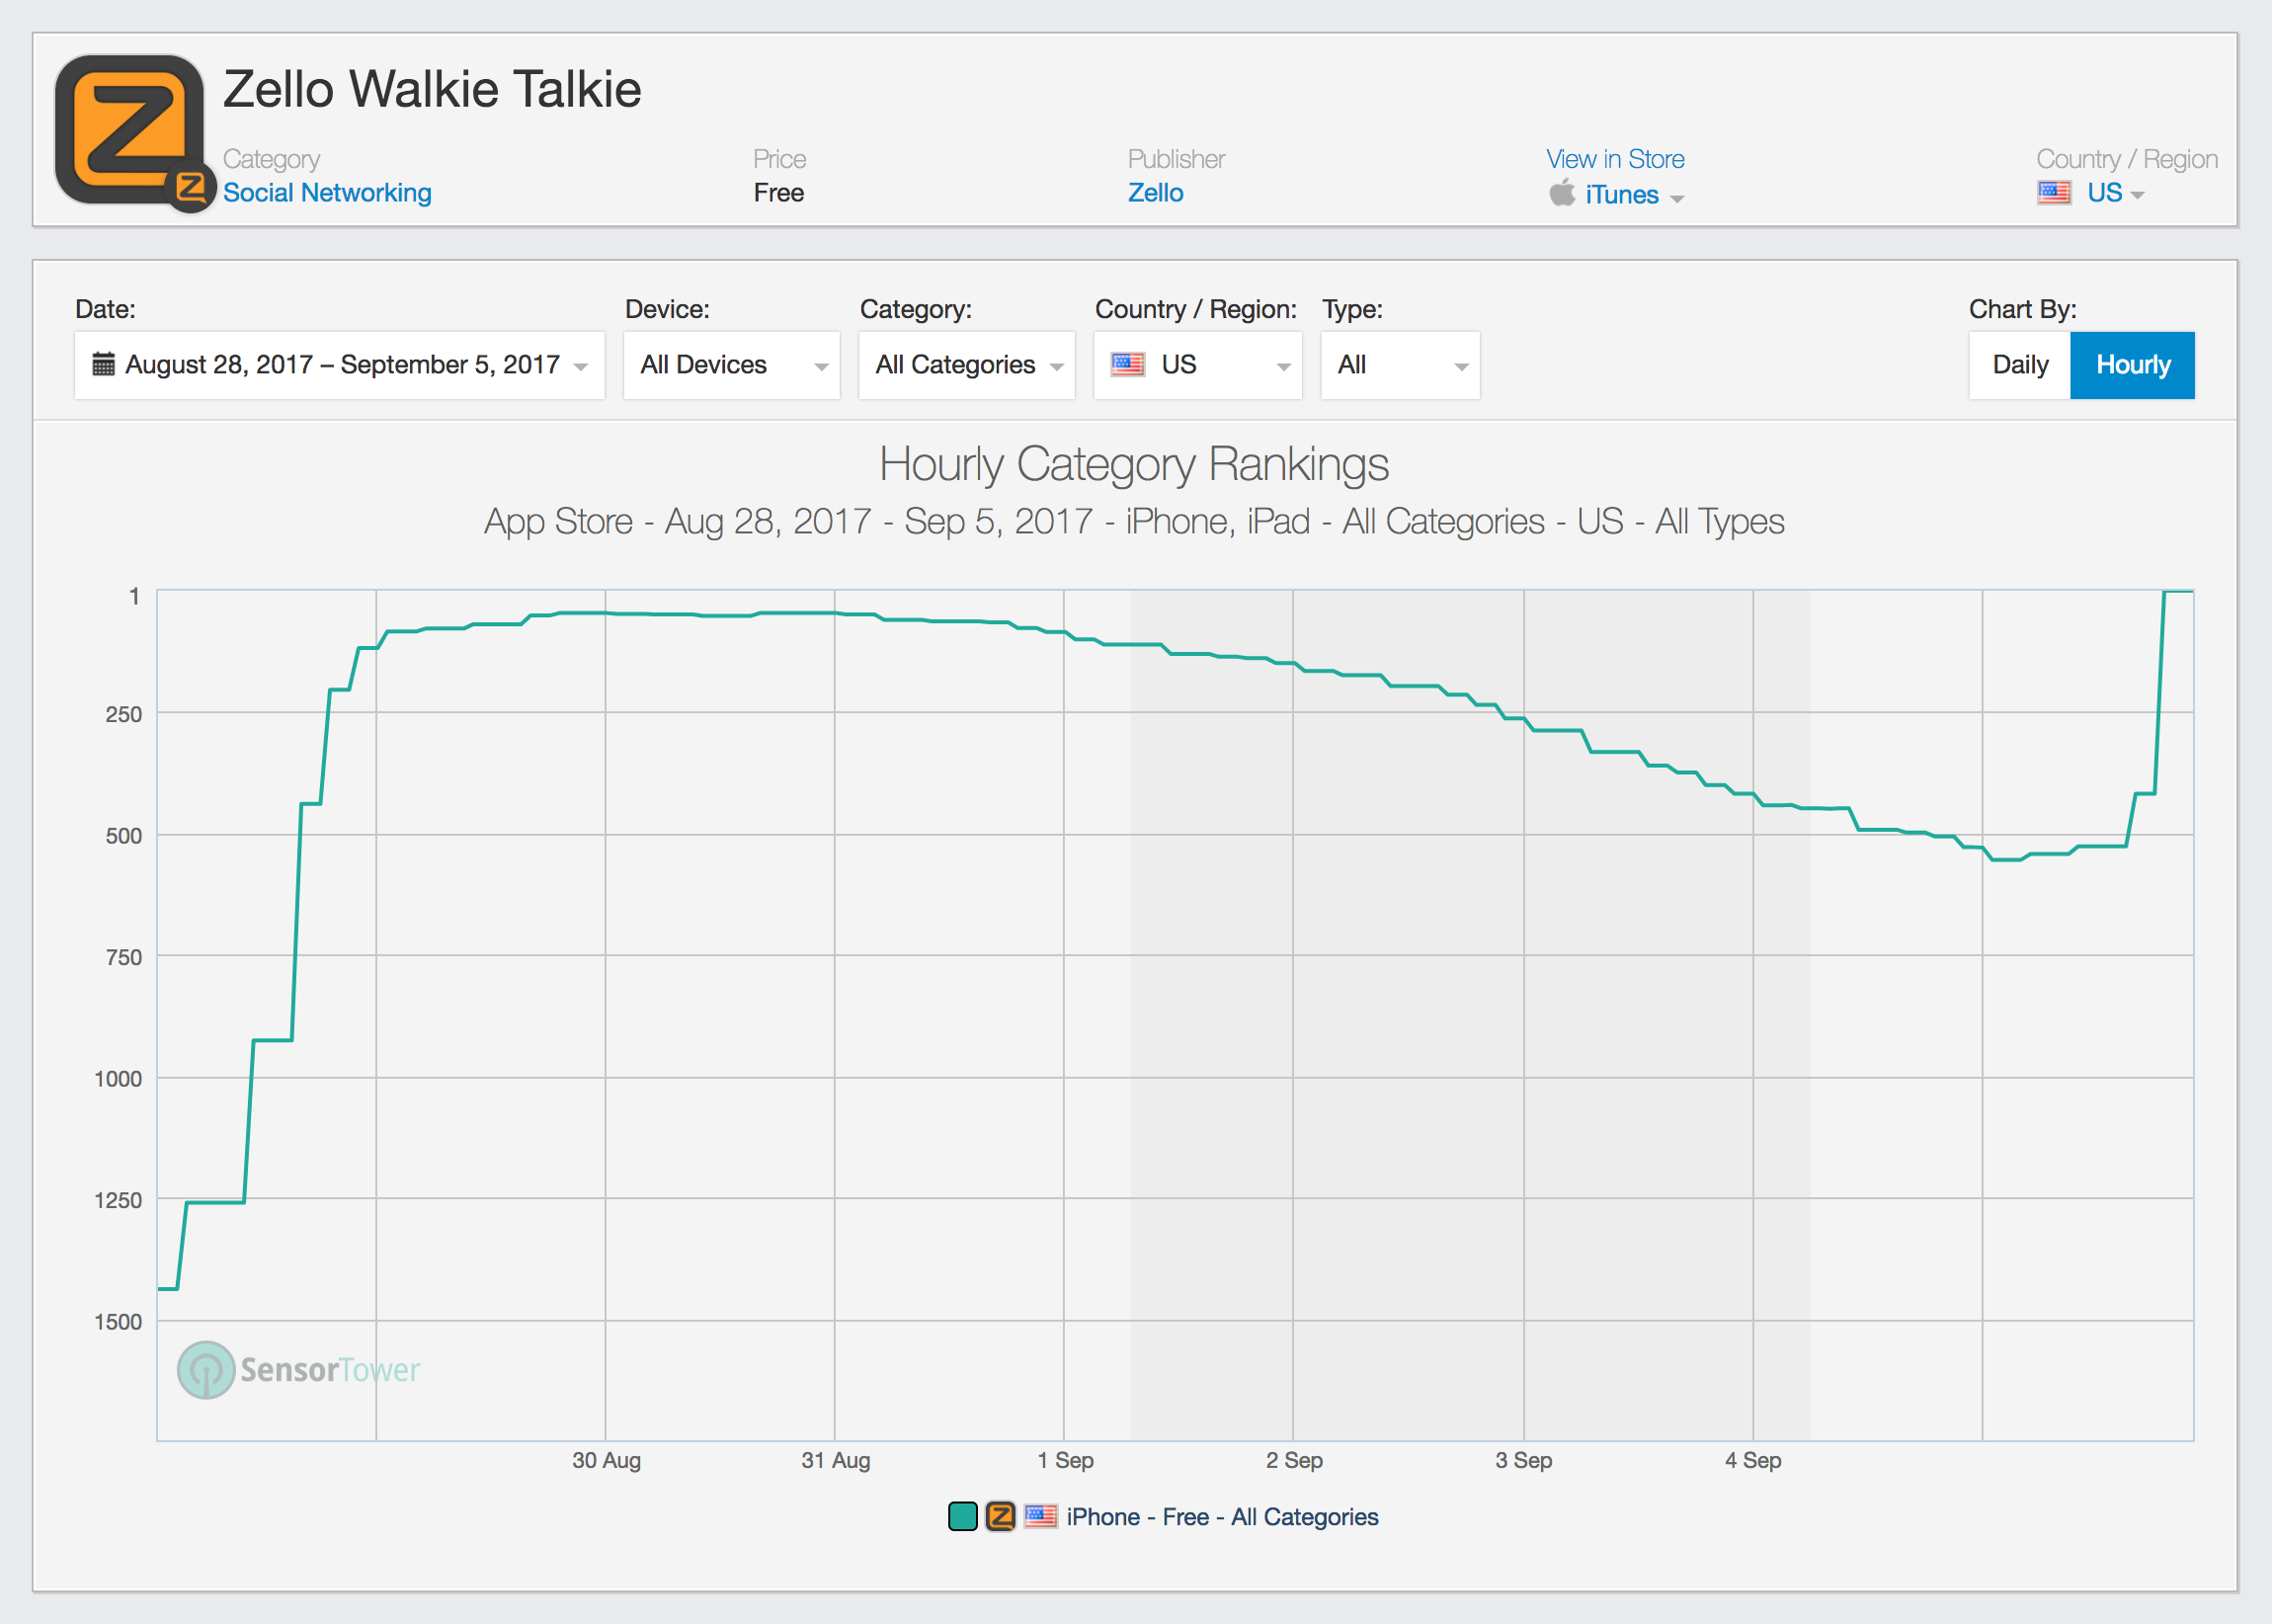 A walkietalkie app called Zello is No. 1 in the App Store